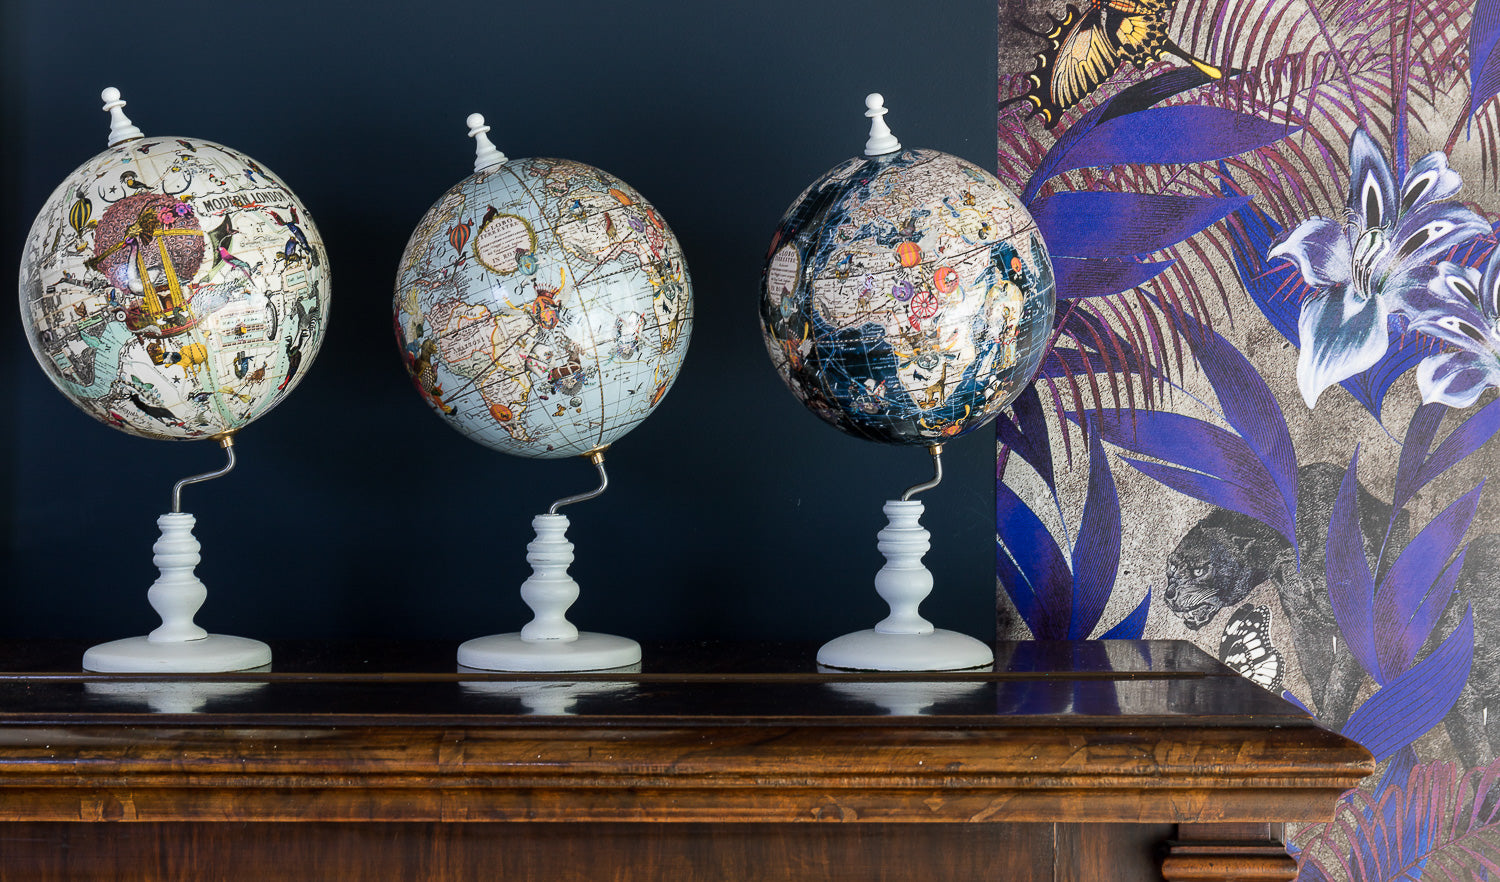 wallpaper and globes by Kristjana S Williams Interiors